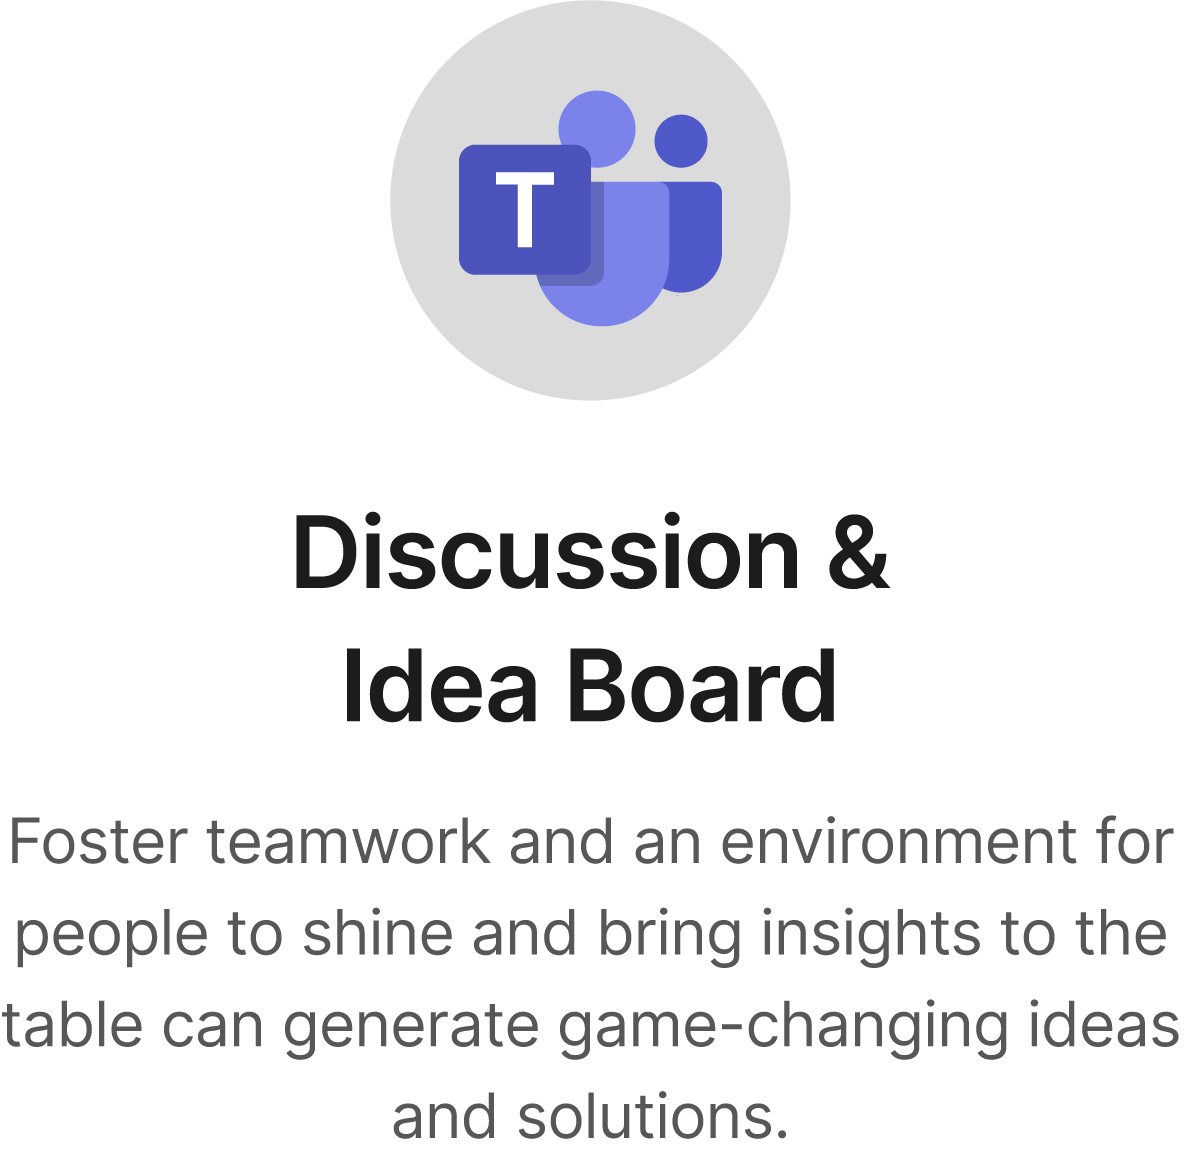 Discussion+IdeaBoard